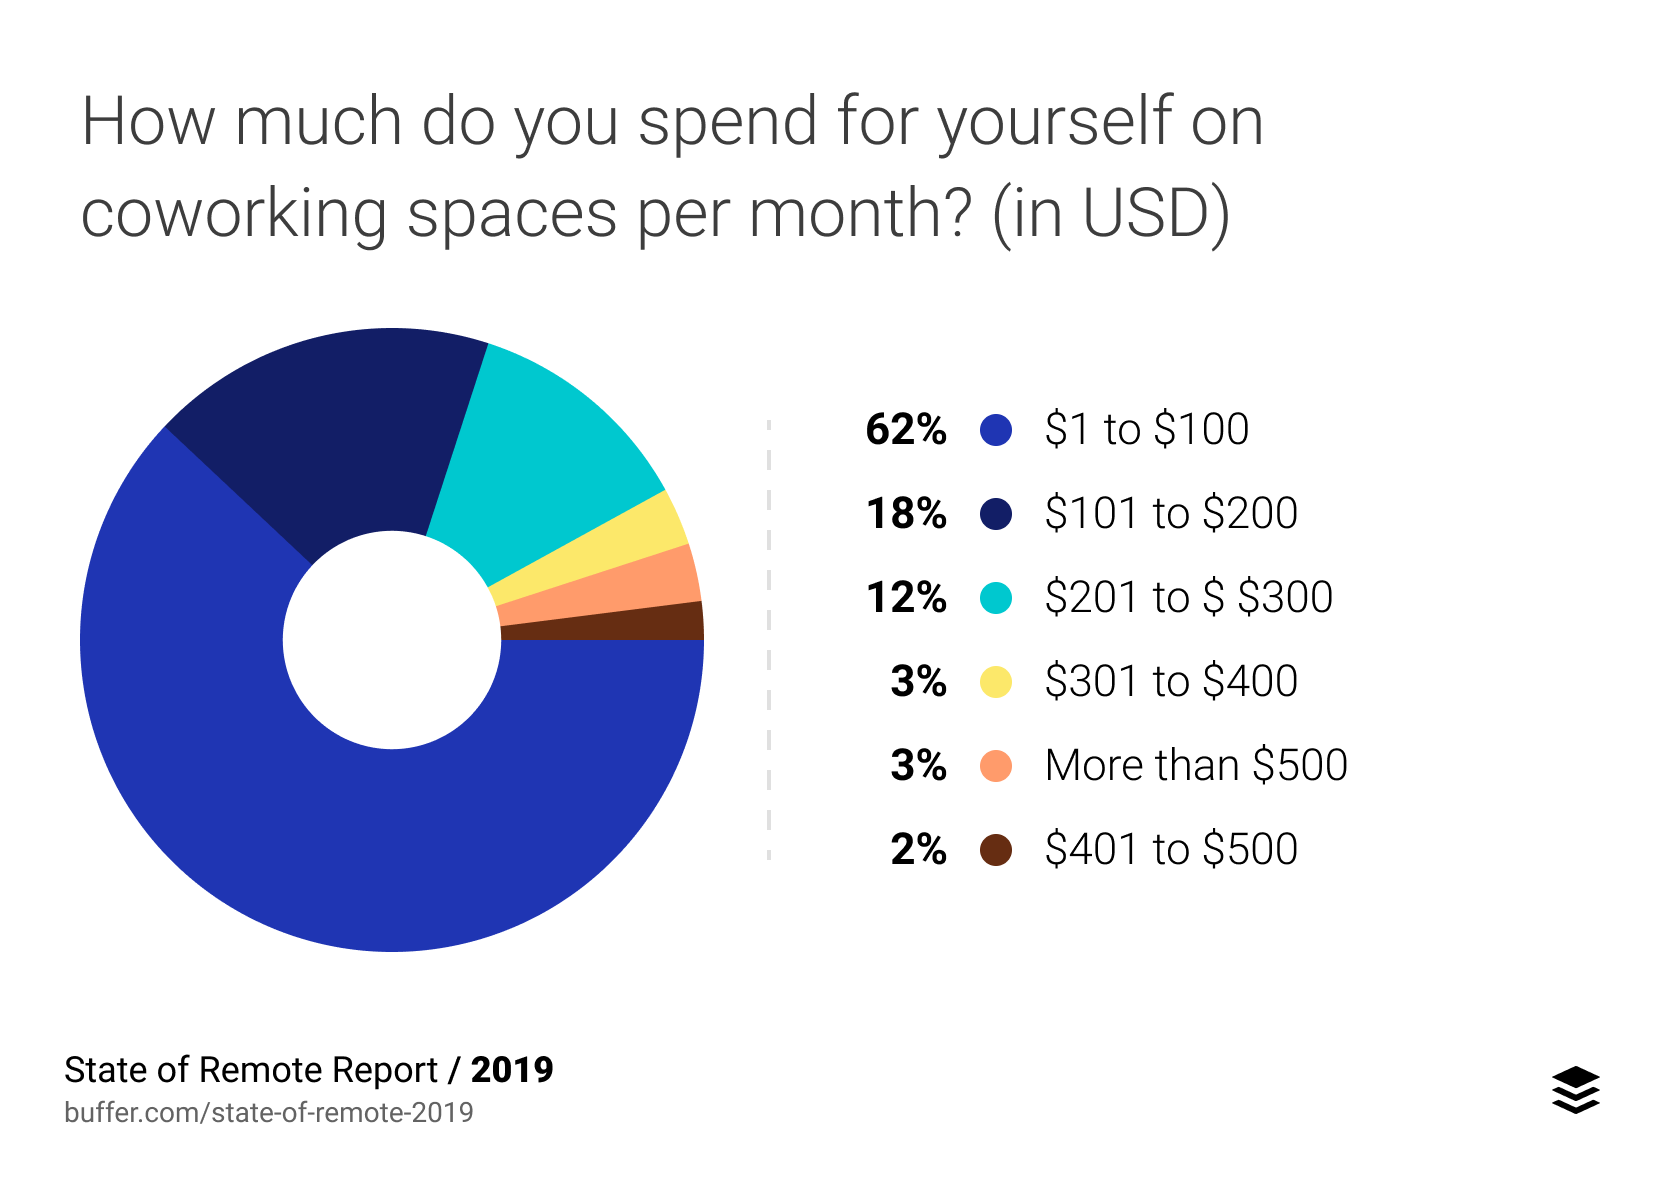 If you work from coworking spaces, how much do you spend for yourself on coworking spaces per month? (in USD)